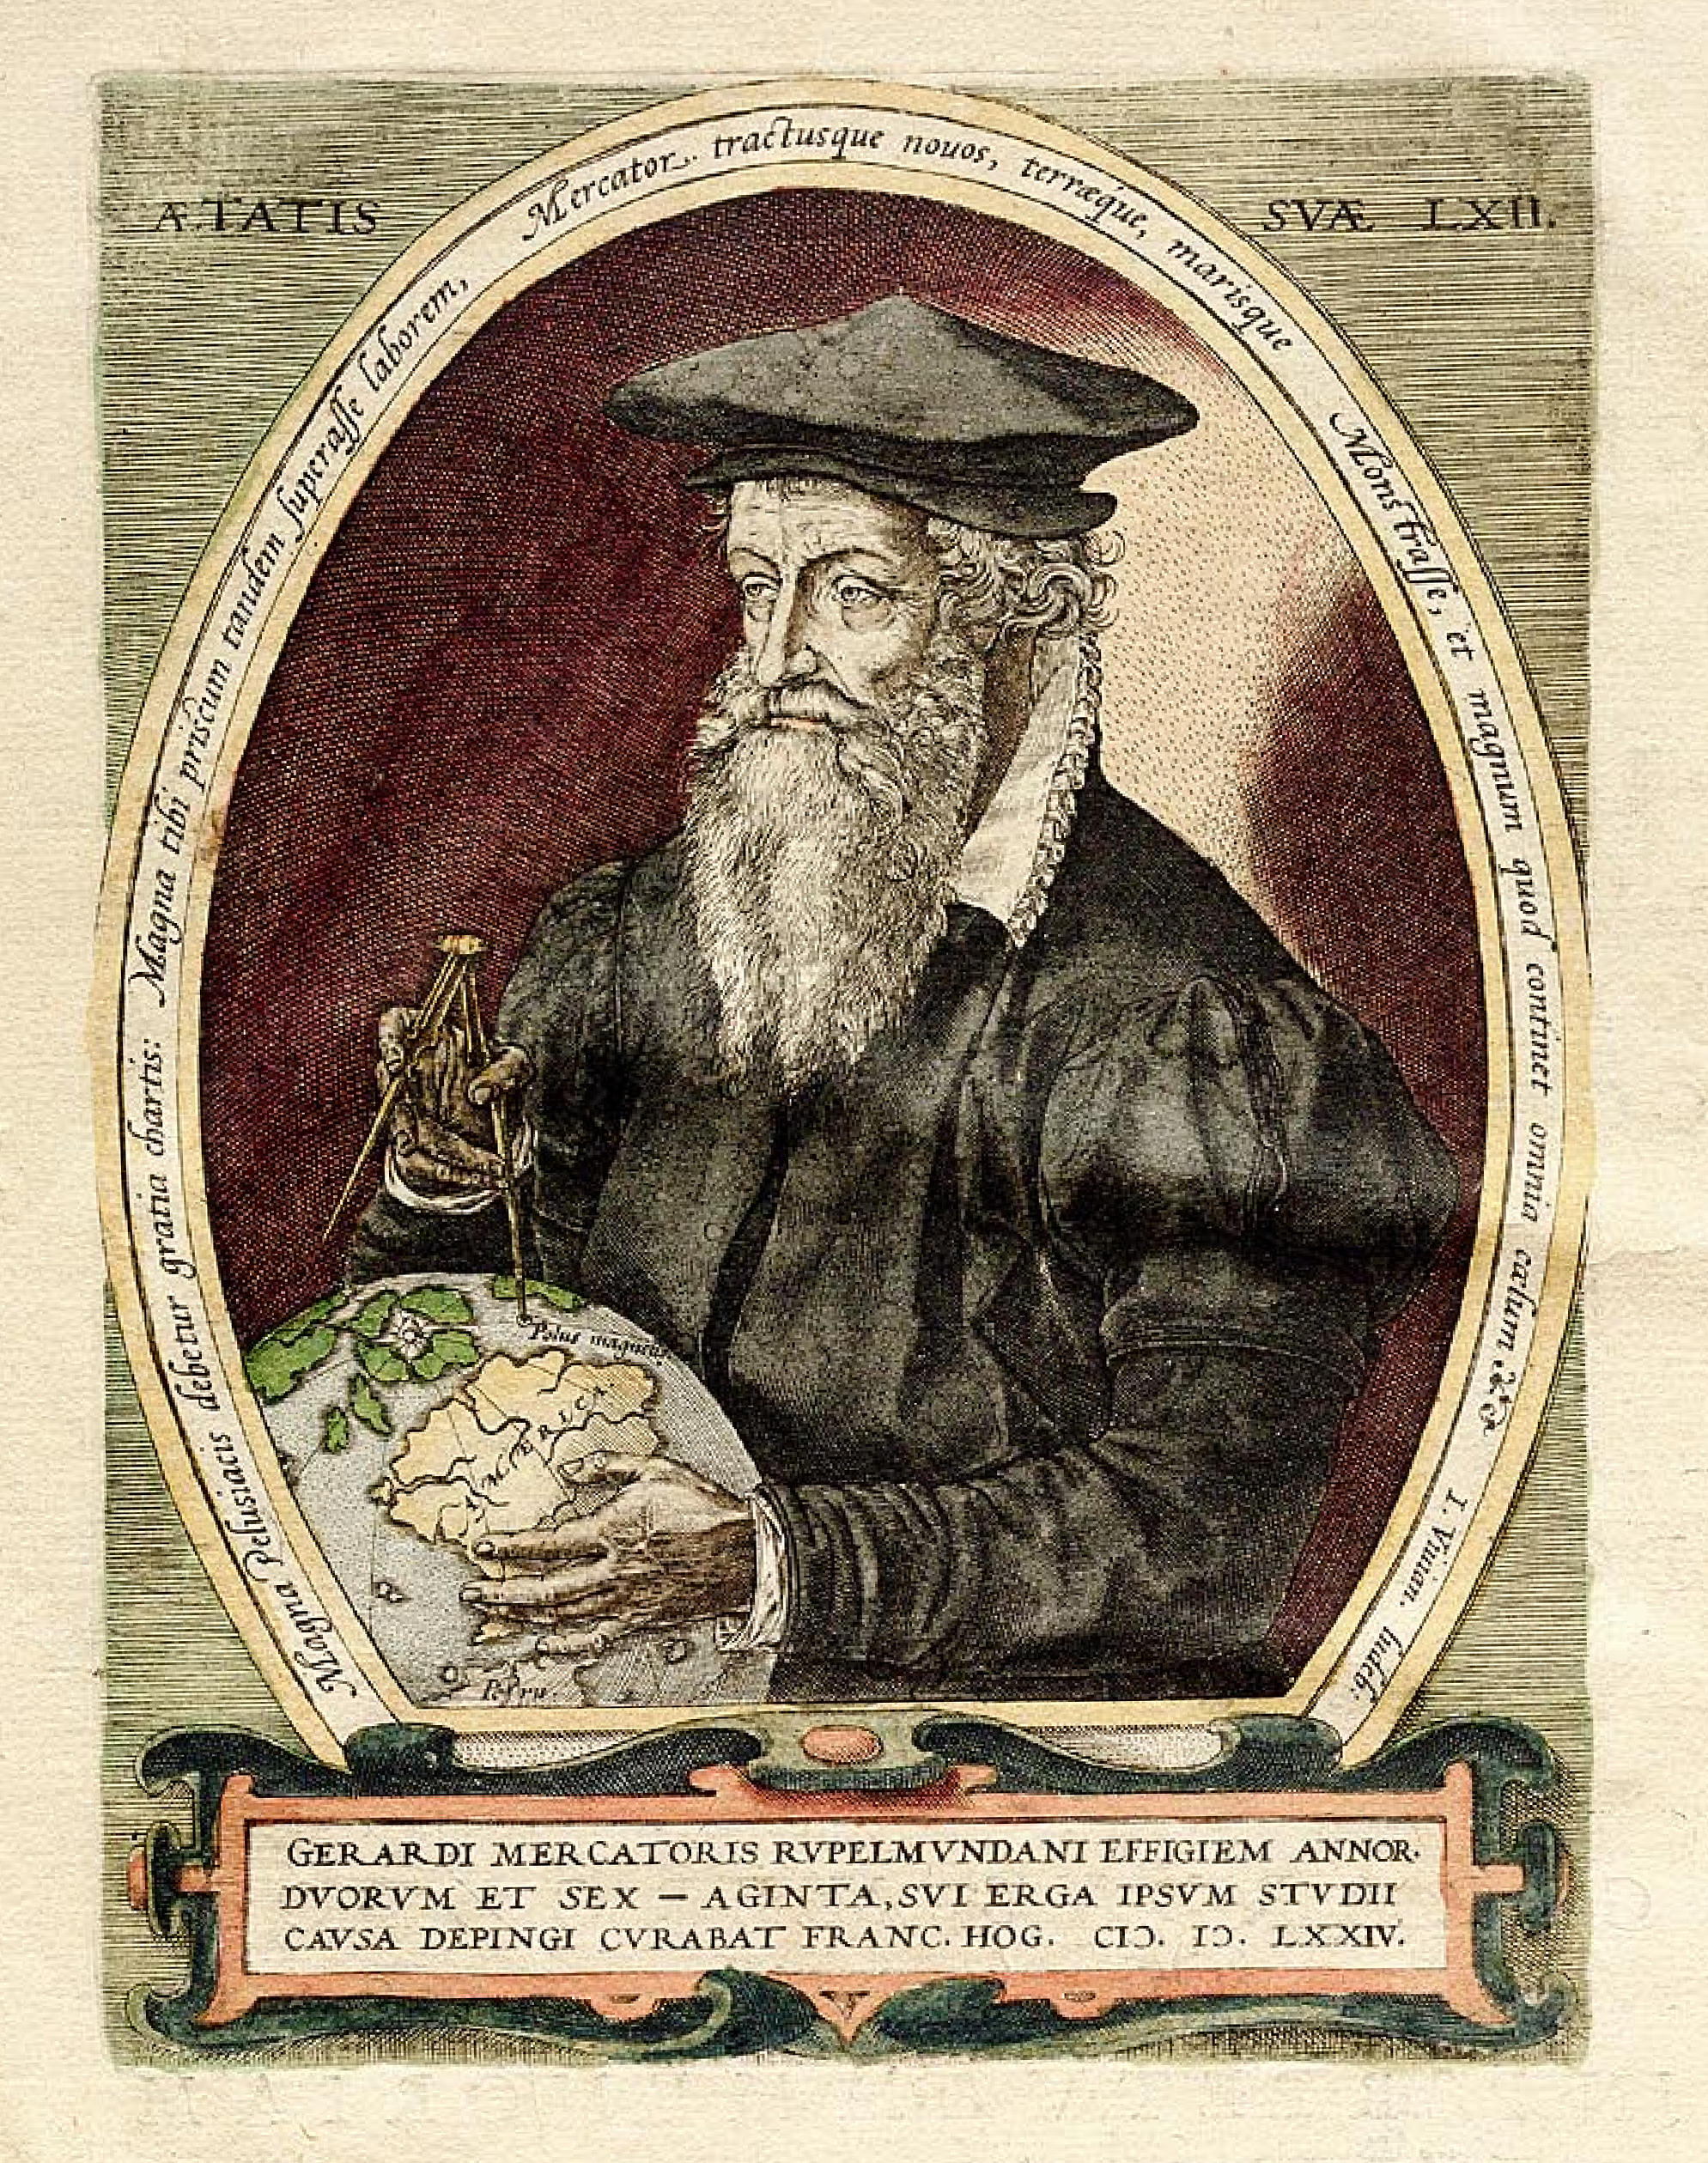 Mercator 1569 world map - Wikipedia, the free encyclopedia